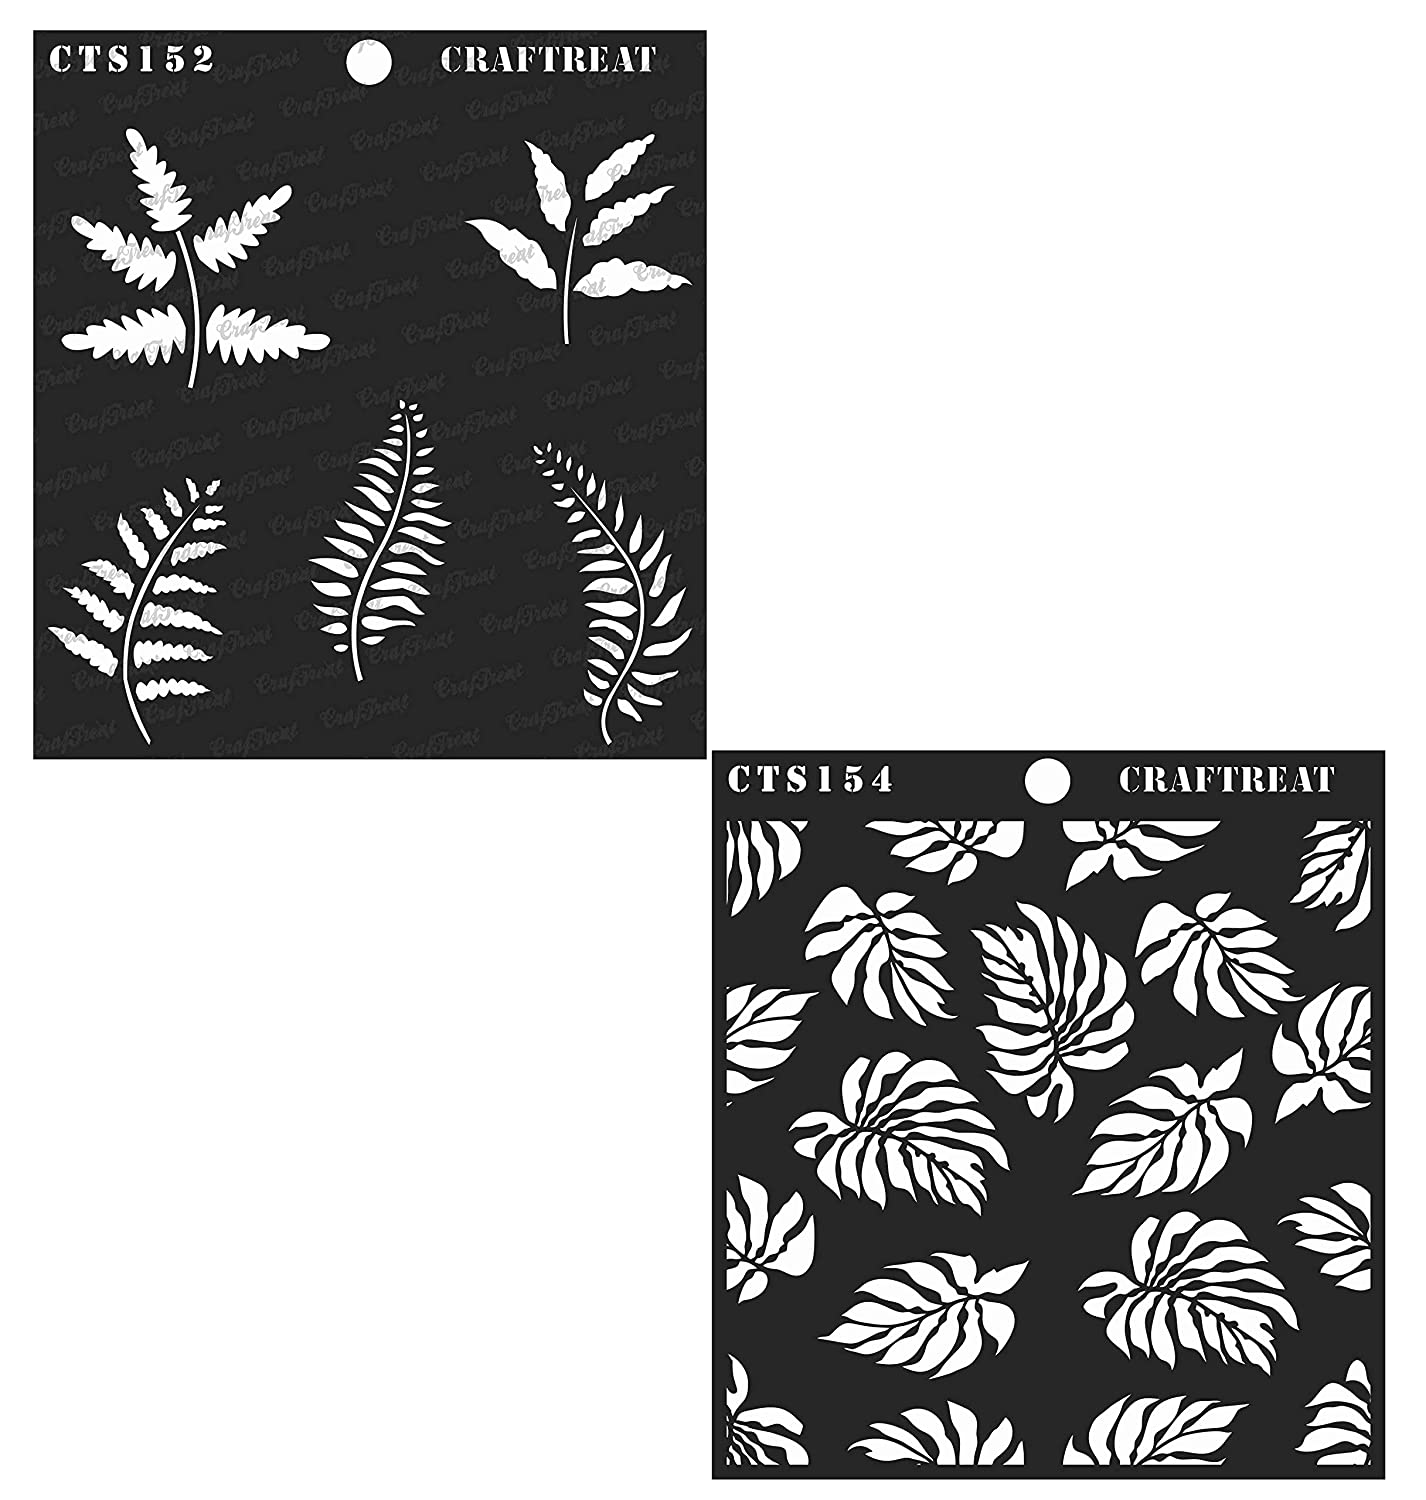 Craftreat Stencil - Ferns and Tropical Leaves (2 pcs) - Reusable Painting Template for Journal, Home Decor, Crafting, DIY Albums, Scrapbook and Printing on Paper, Floor, Wall, Tile, Fabric 6x6 inches